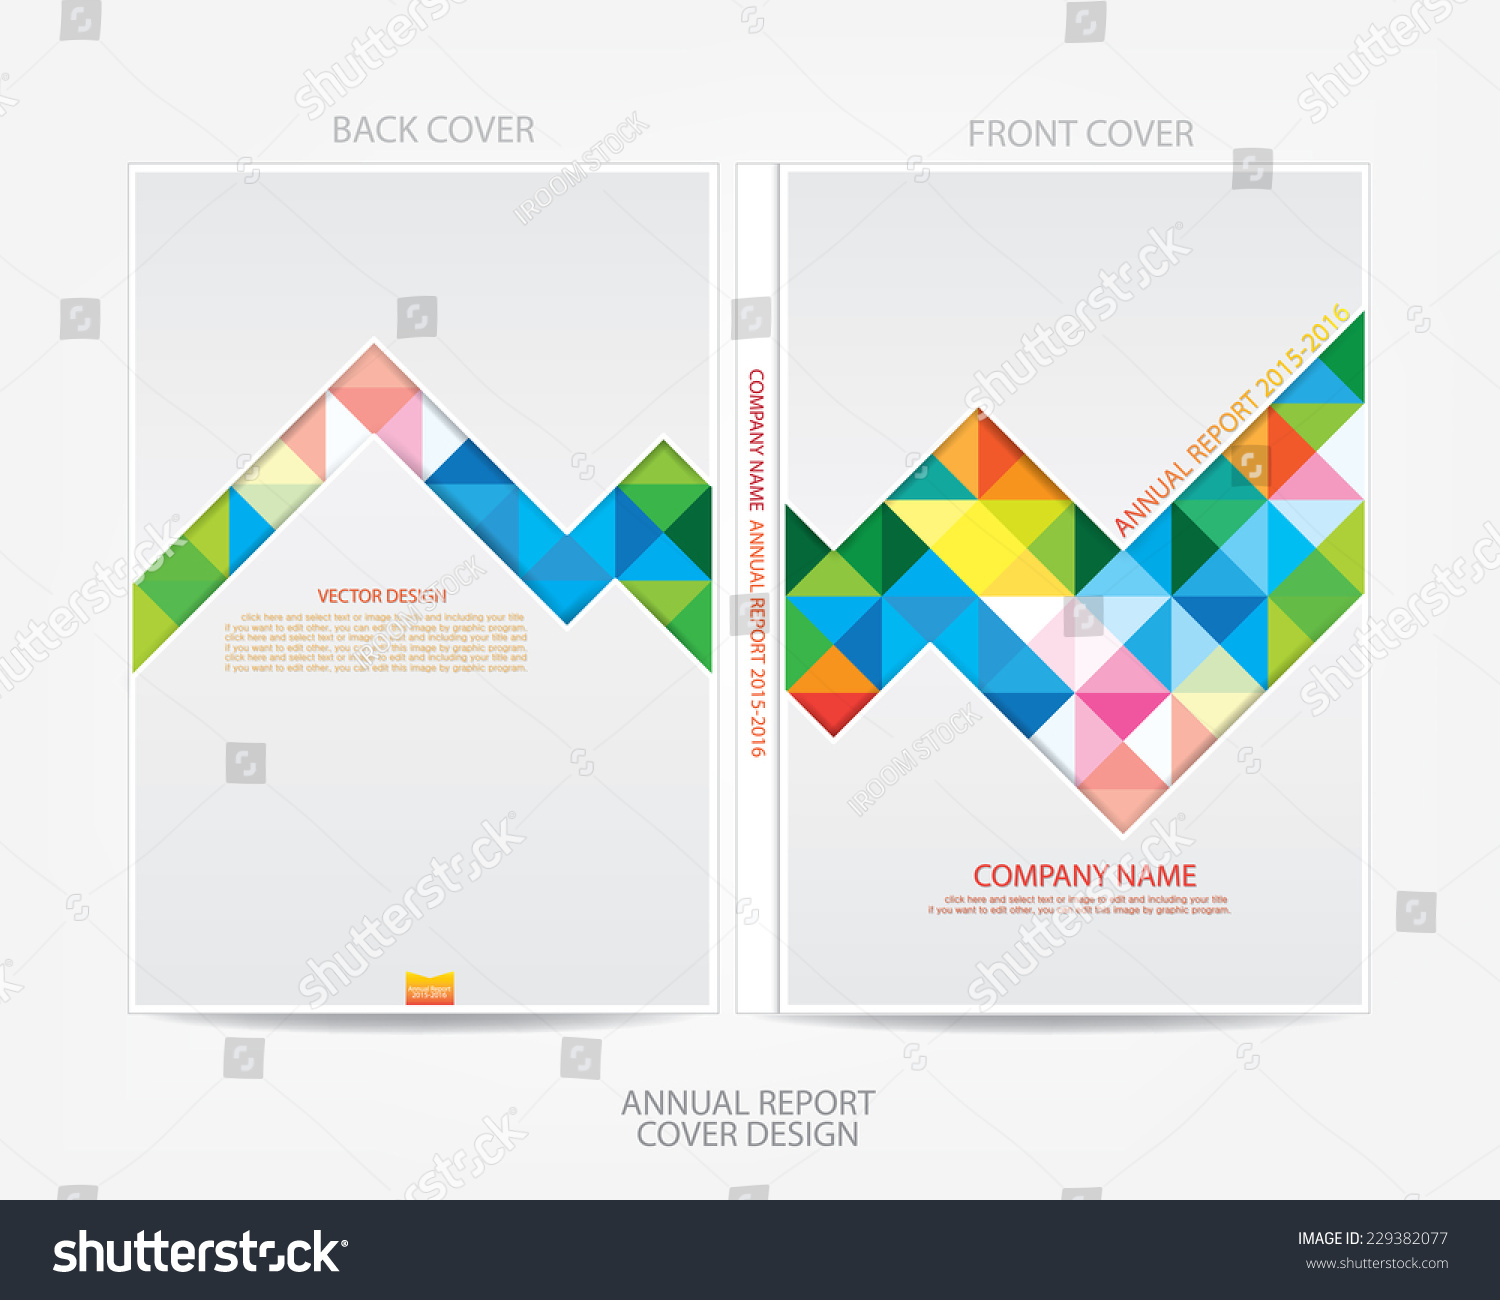 annual report cover design stock vector 229382077 shutterstock annual report cover design